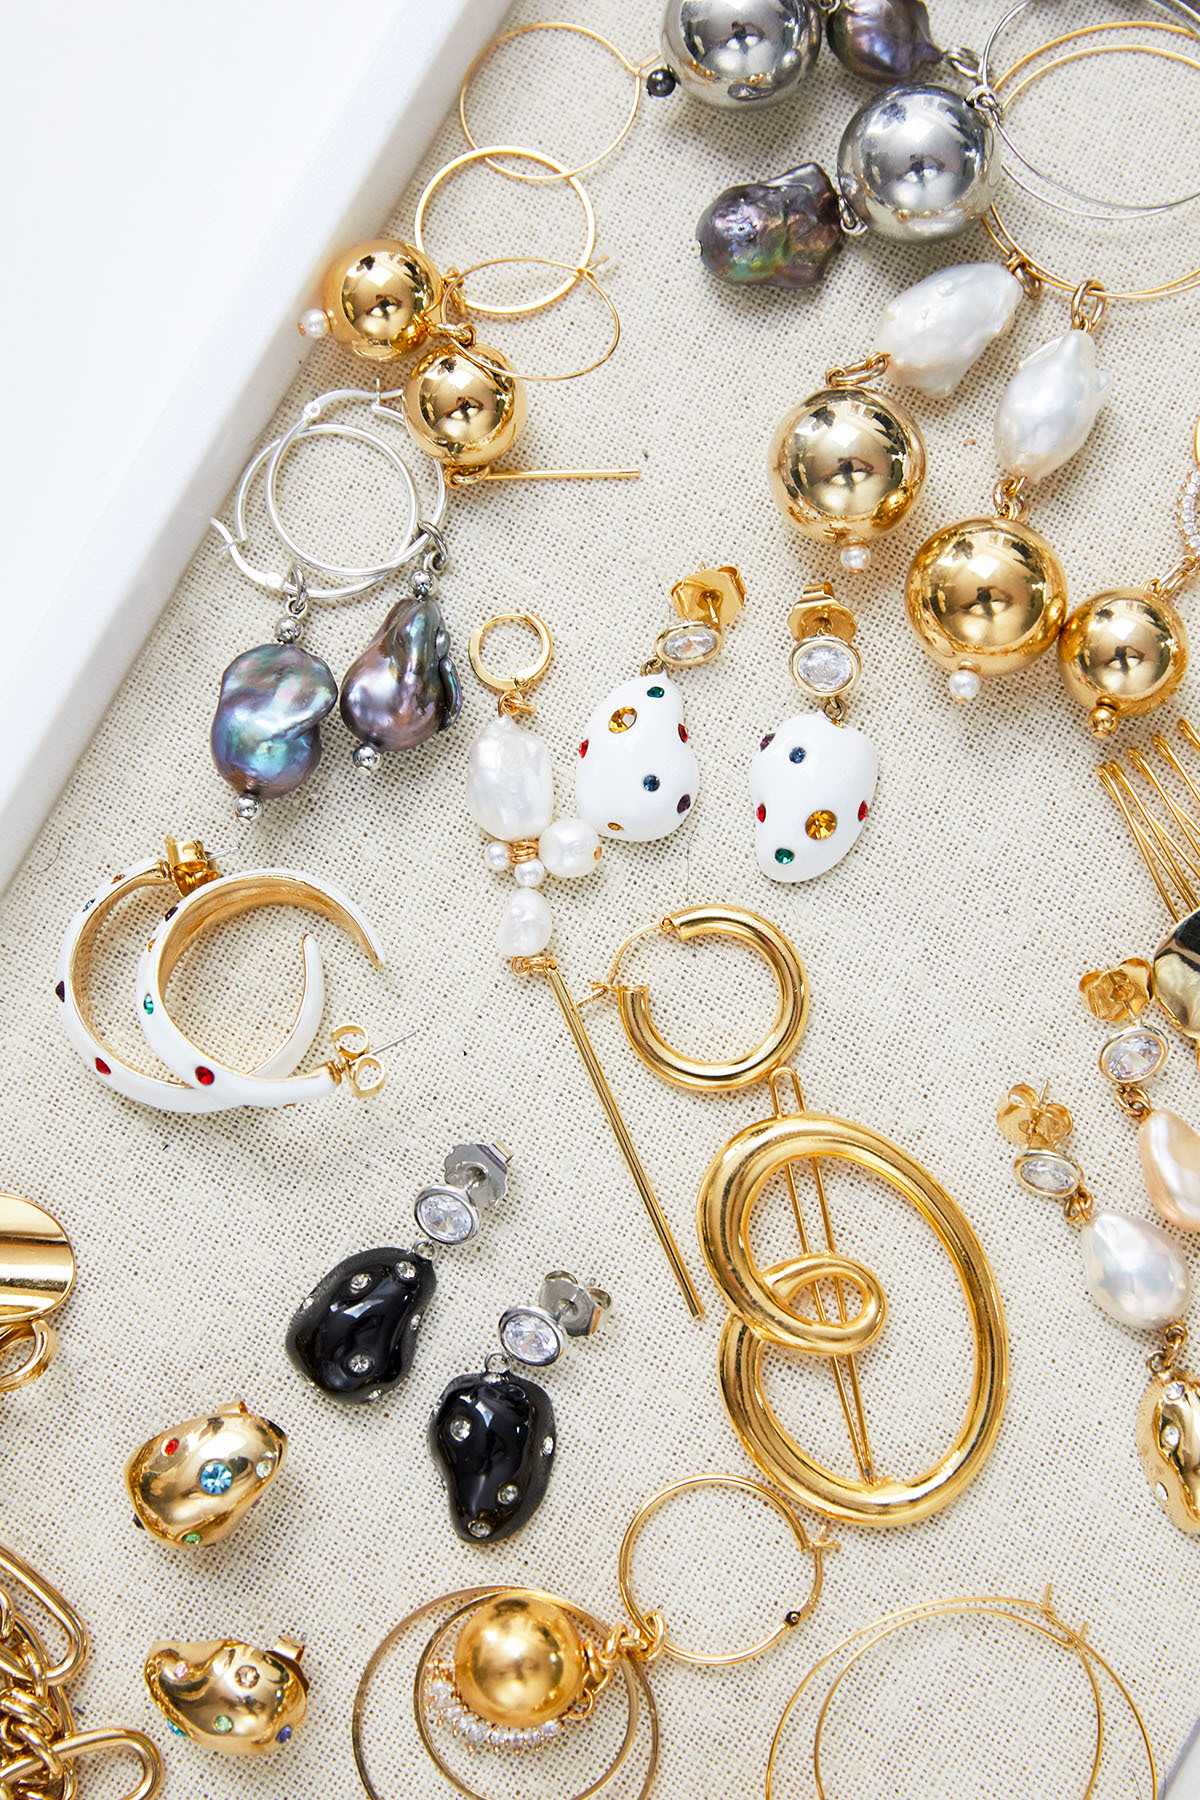 A treasure trove of unique Mounser pieces decorate the designer's jewelry box.